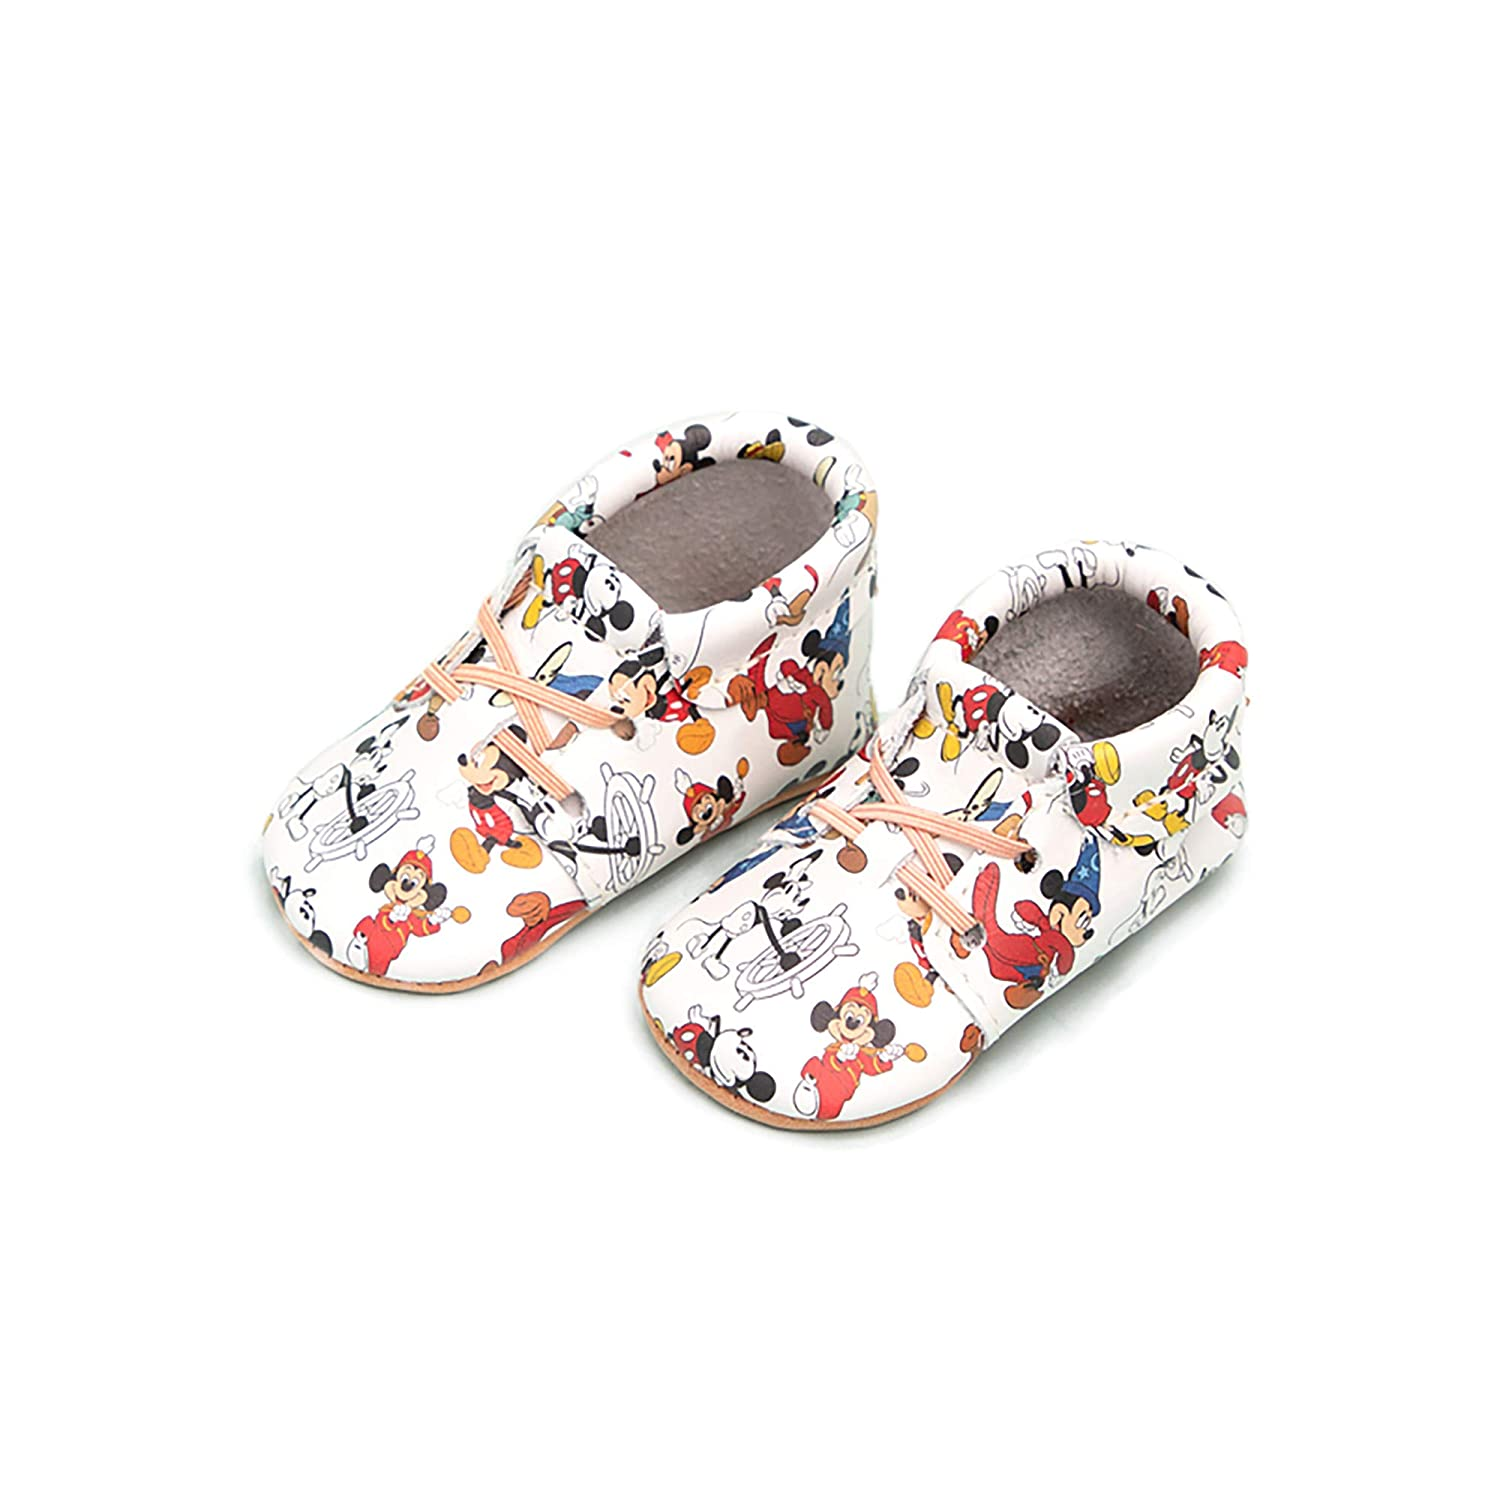 Disney Baby Girl Boy Shoes Freshly Picked Infant Sizes 1-5 Soft Sole Leather Oxford Moccasins